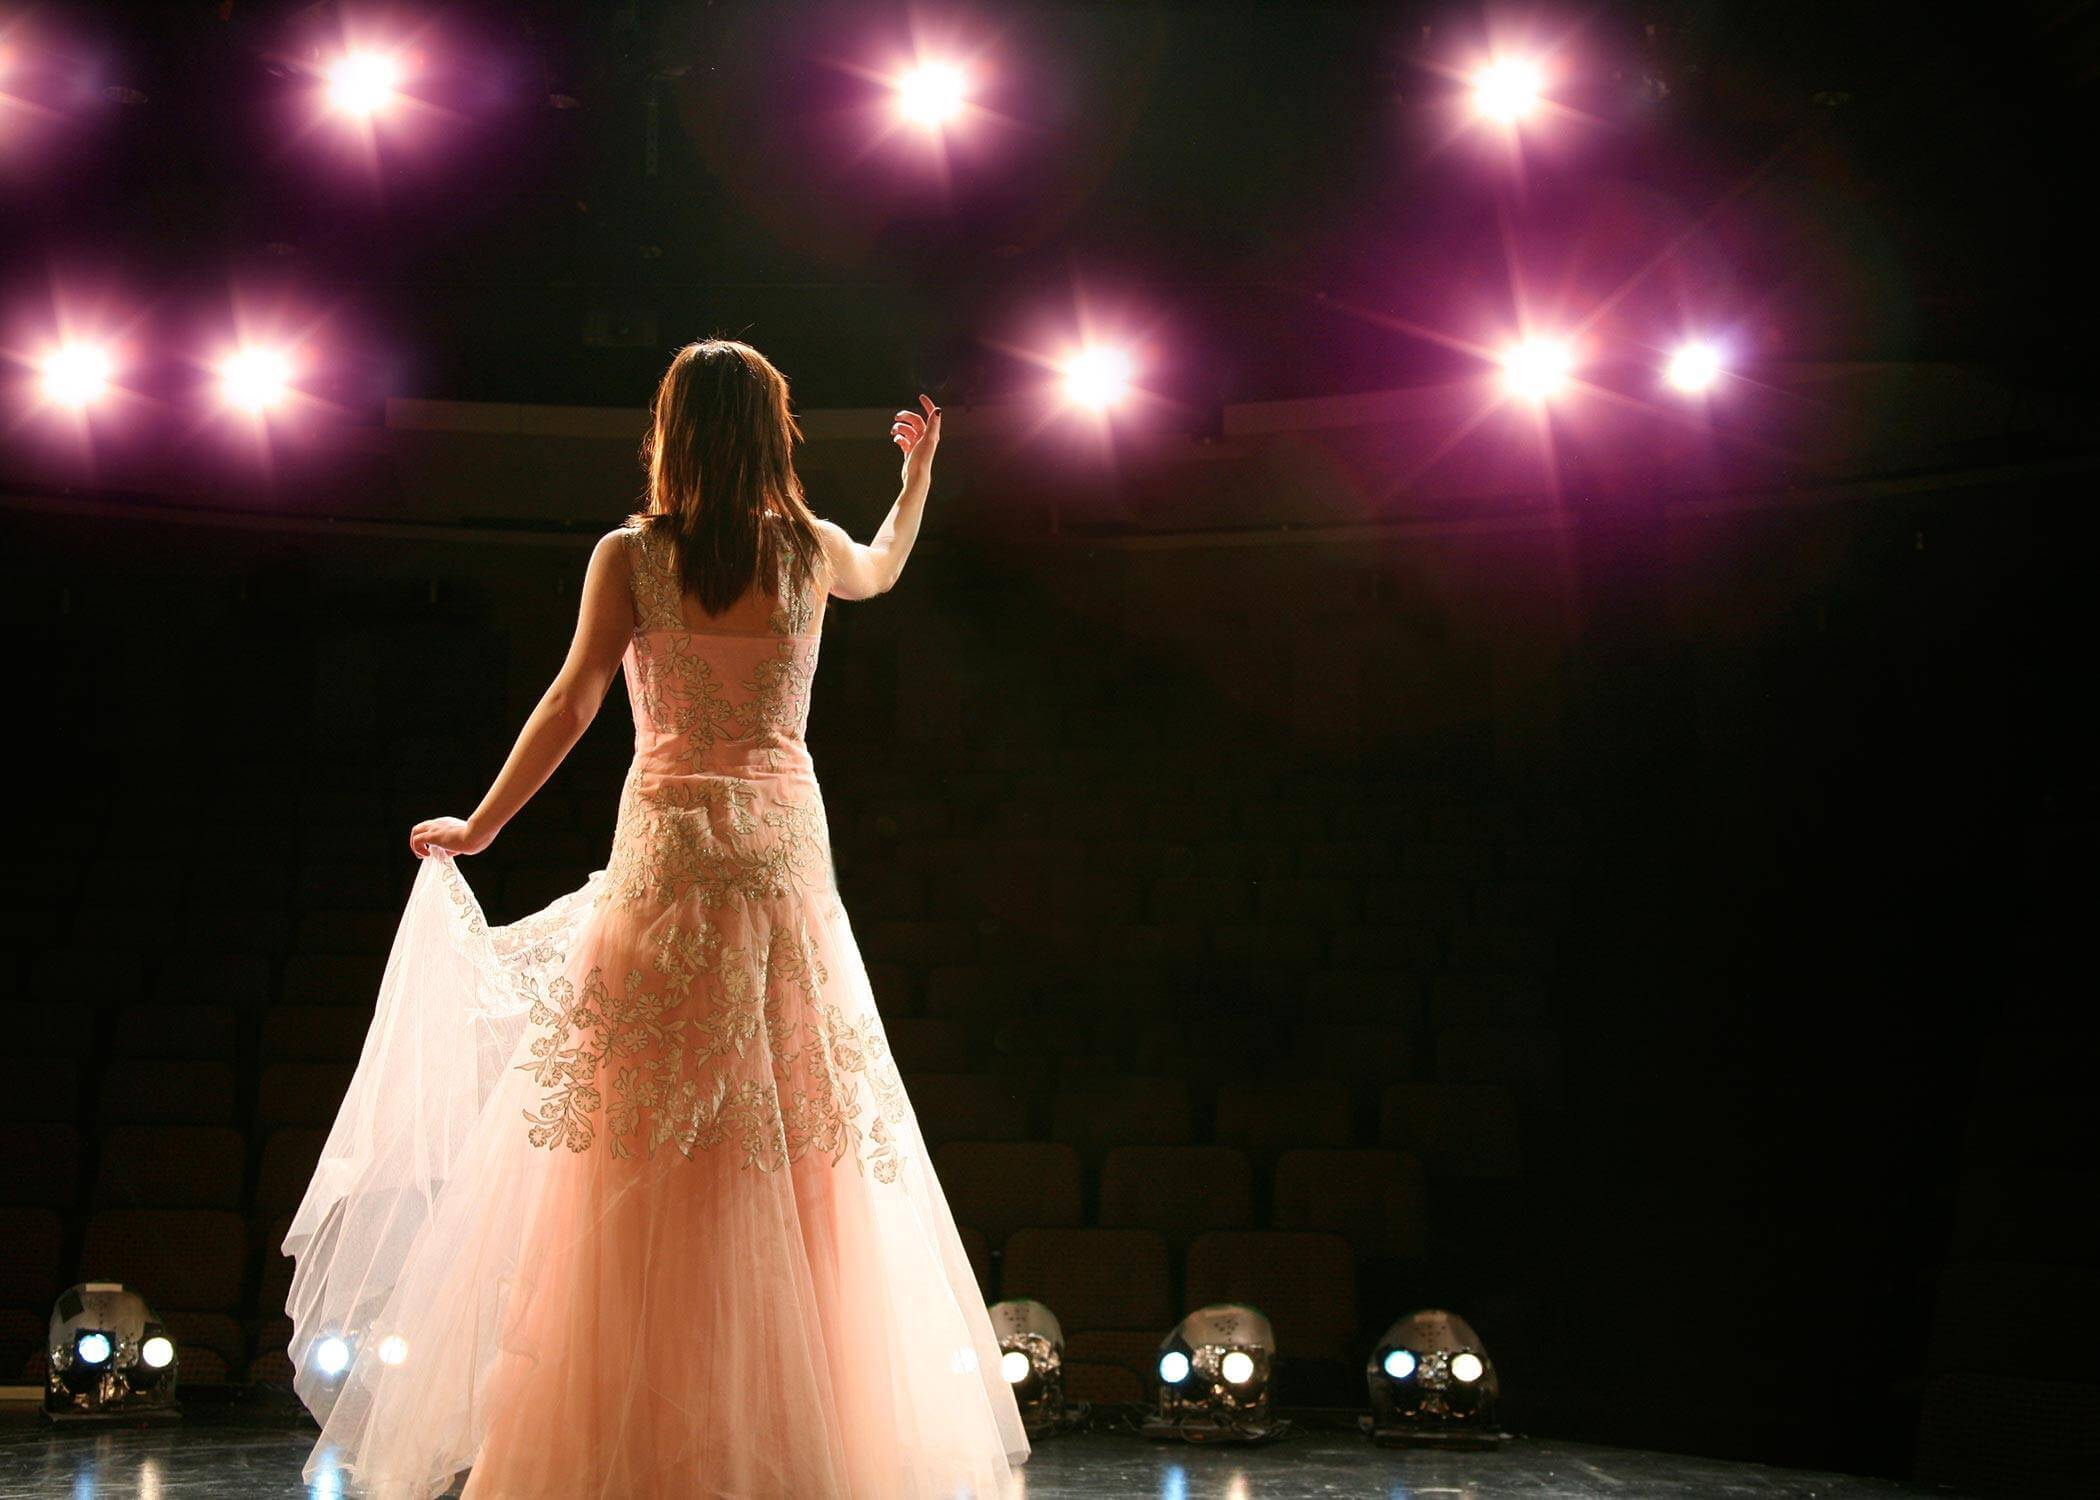 A woman on a stage in a white dress with one arm raised facing a darkened audience and pink stage lights